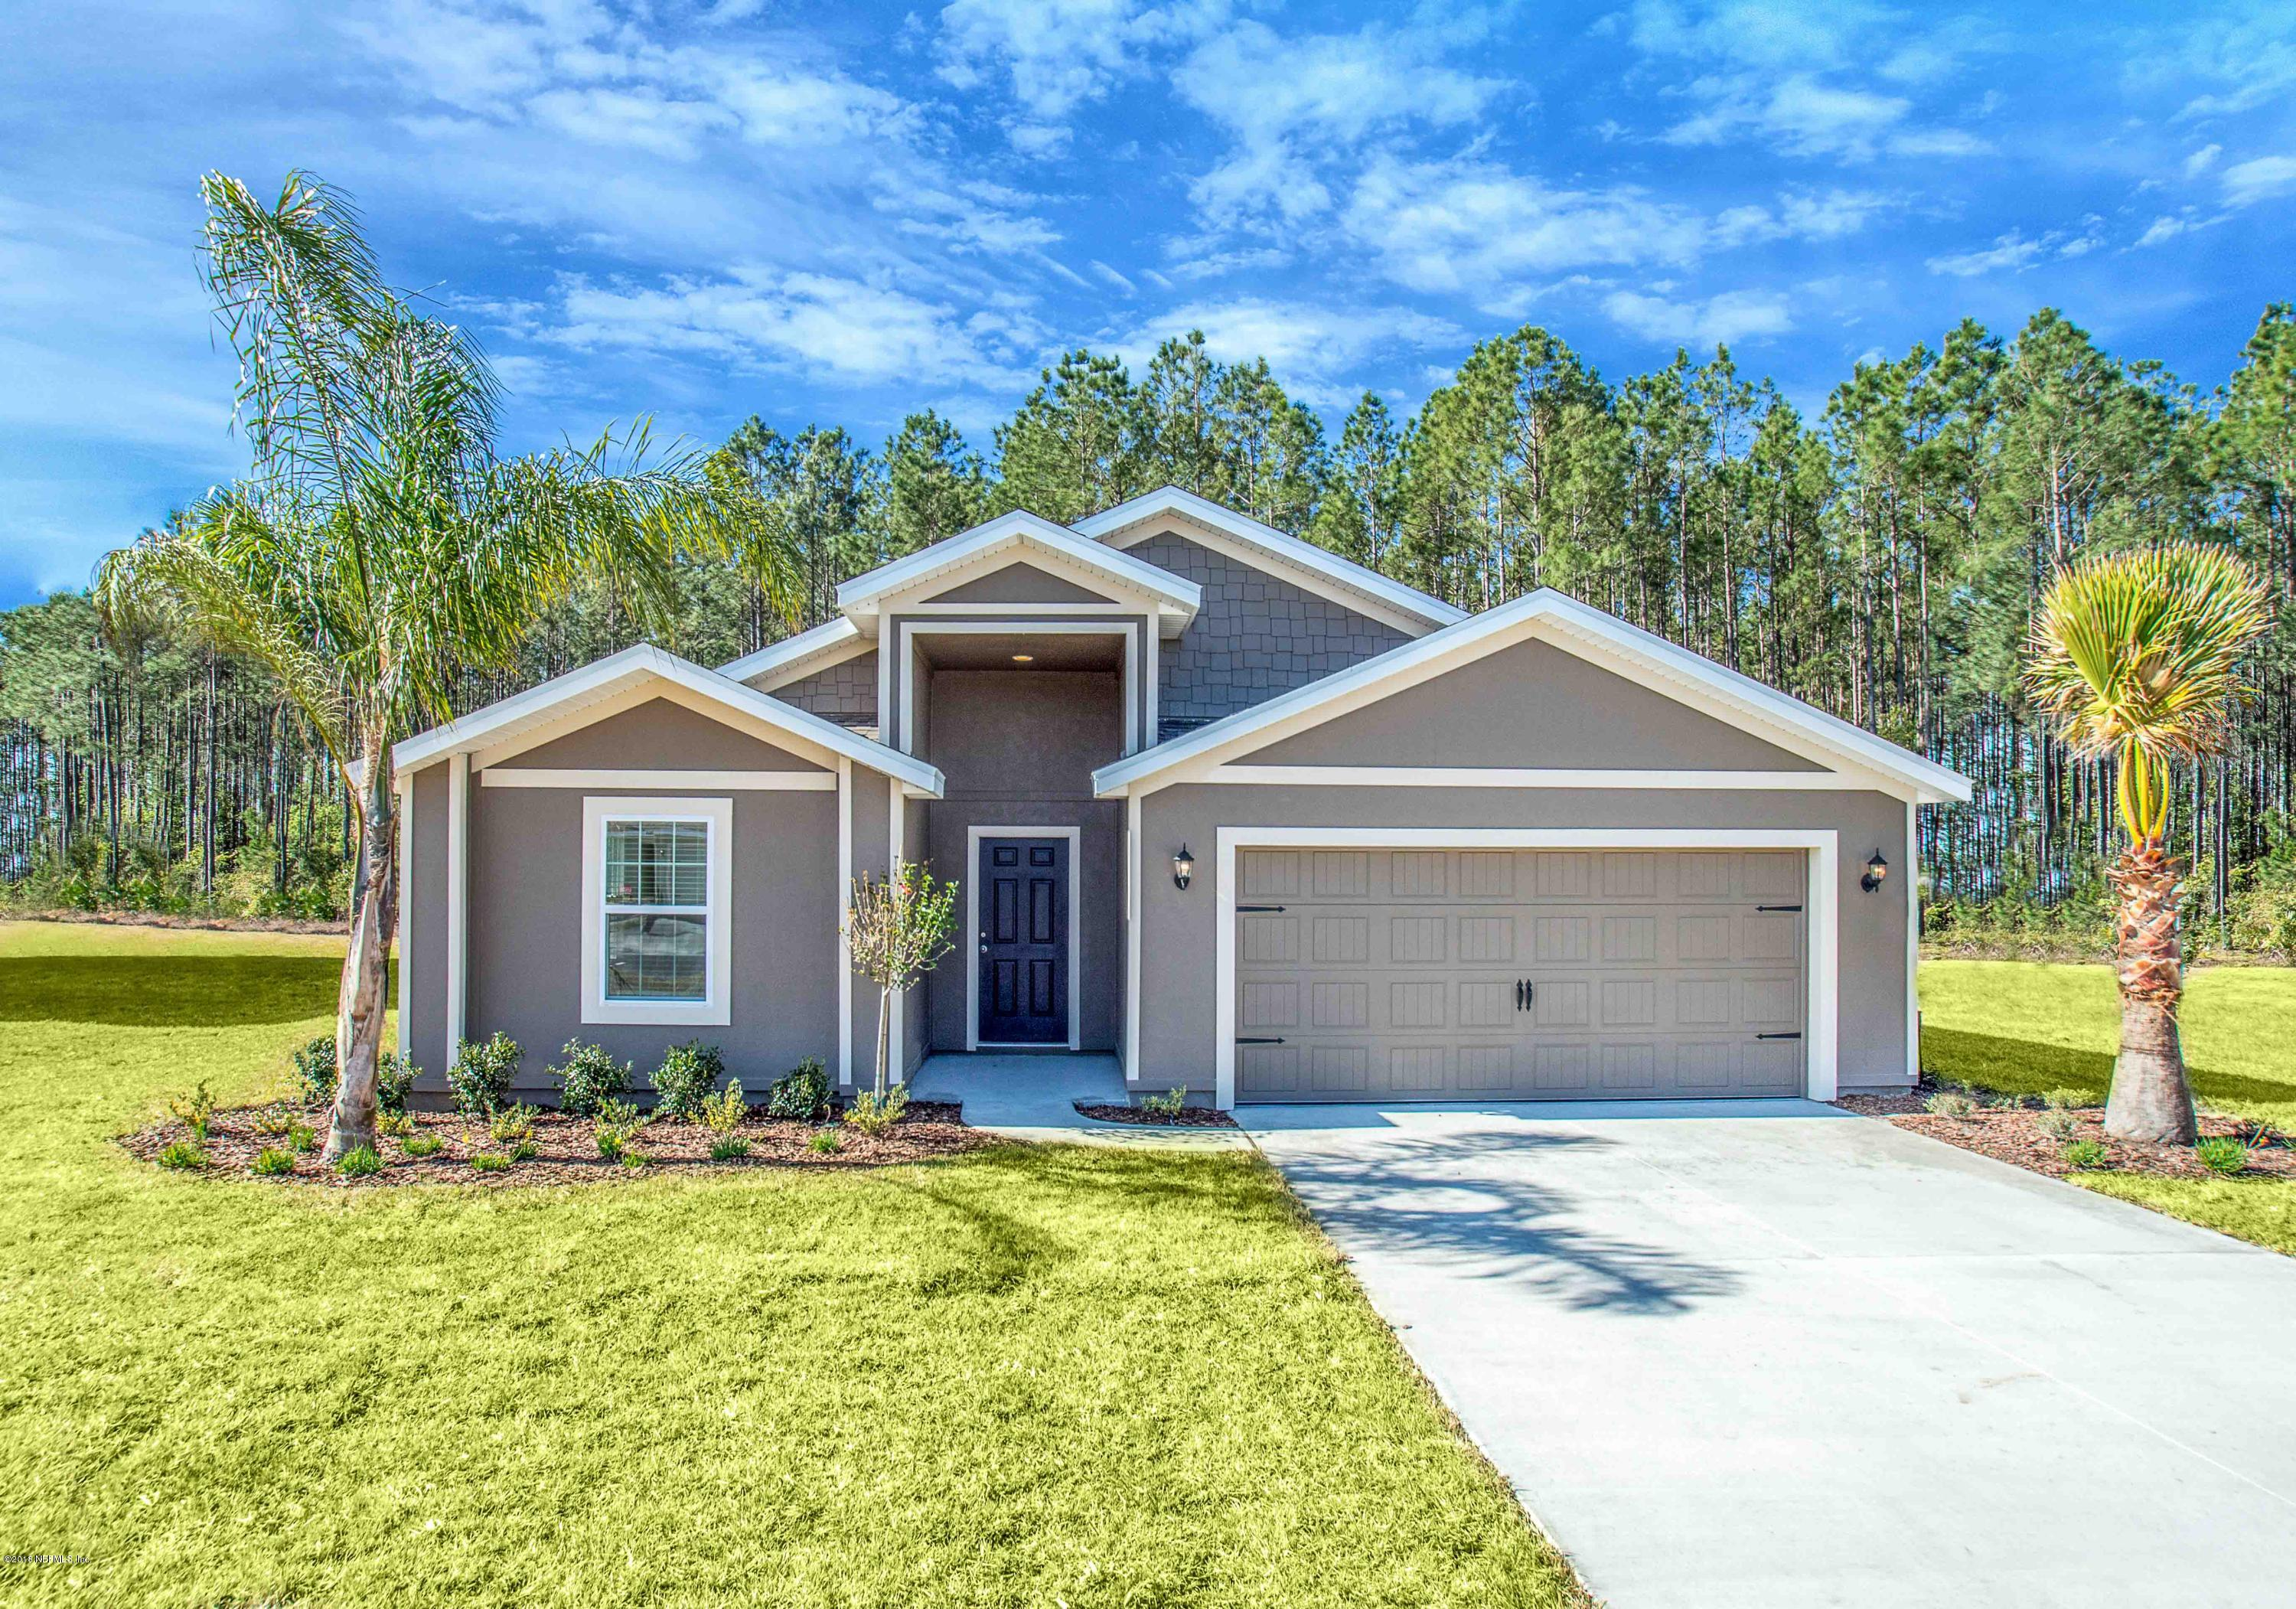 77820 LUMBER CREEK, YULEE, FLORIDA 32097, 4 Bedrooms Bedrooms, ,2 BathroomsBathrooms,Residential - single family,For sale,LUMBER CREEK,927327